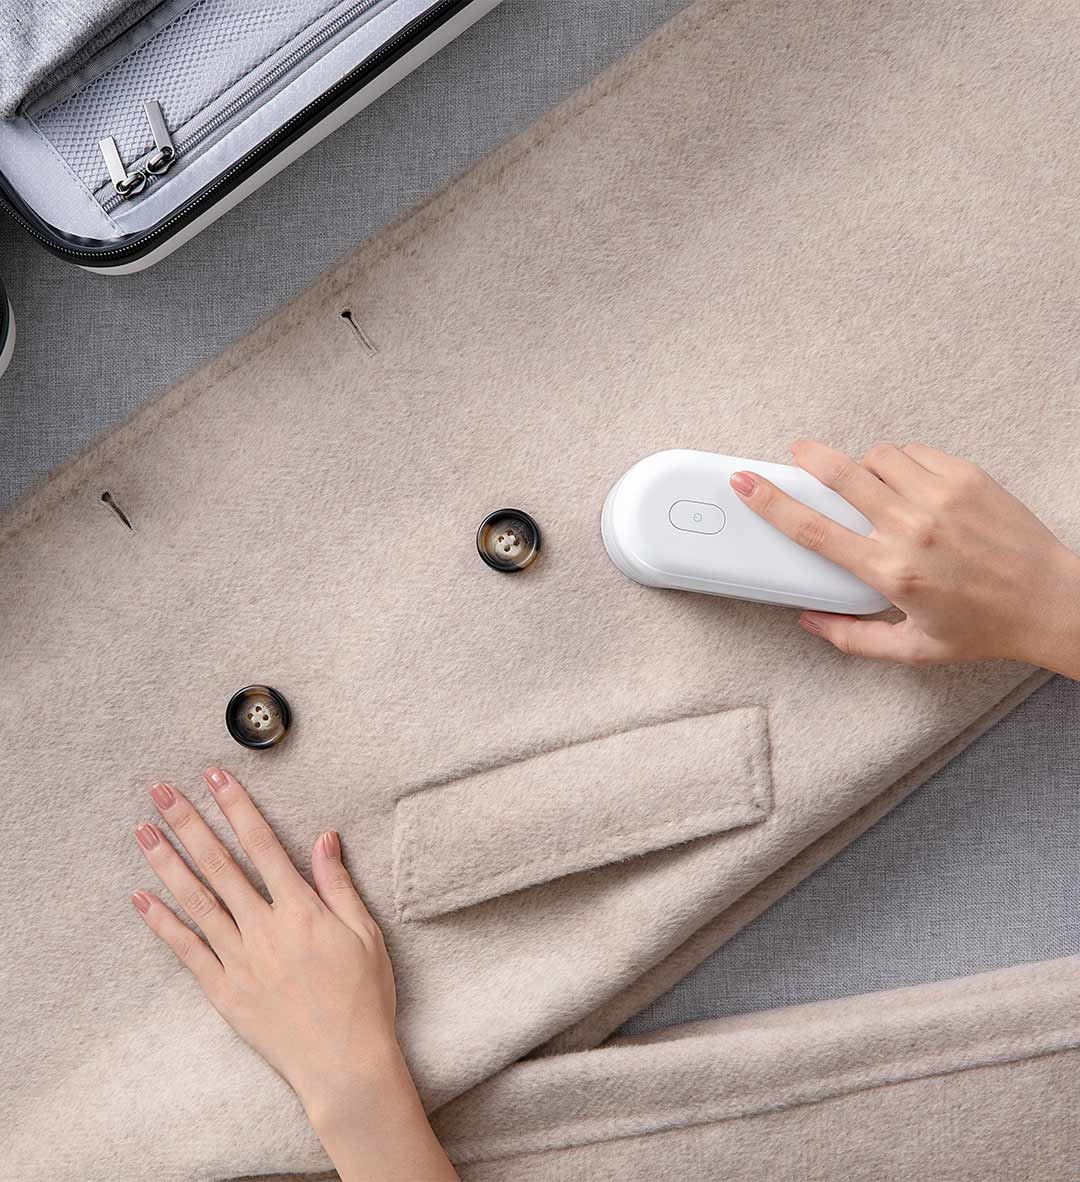 Image 5 - Original Xiaomi Mijia Portable Lint Remover Hair Ball Trimmer Sweater Remover Motor Trimmer 5 leaf Cyclone Floating Cutter HeadSmart Remote Control   -